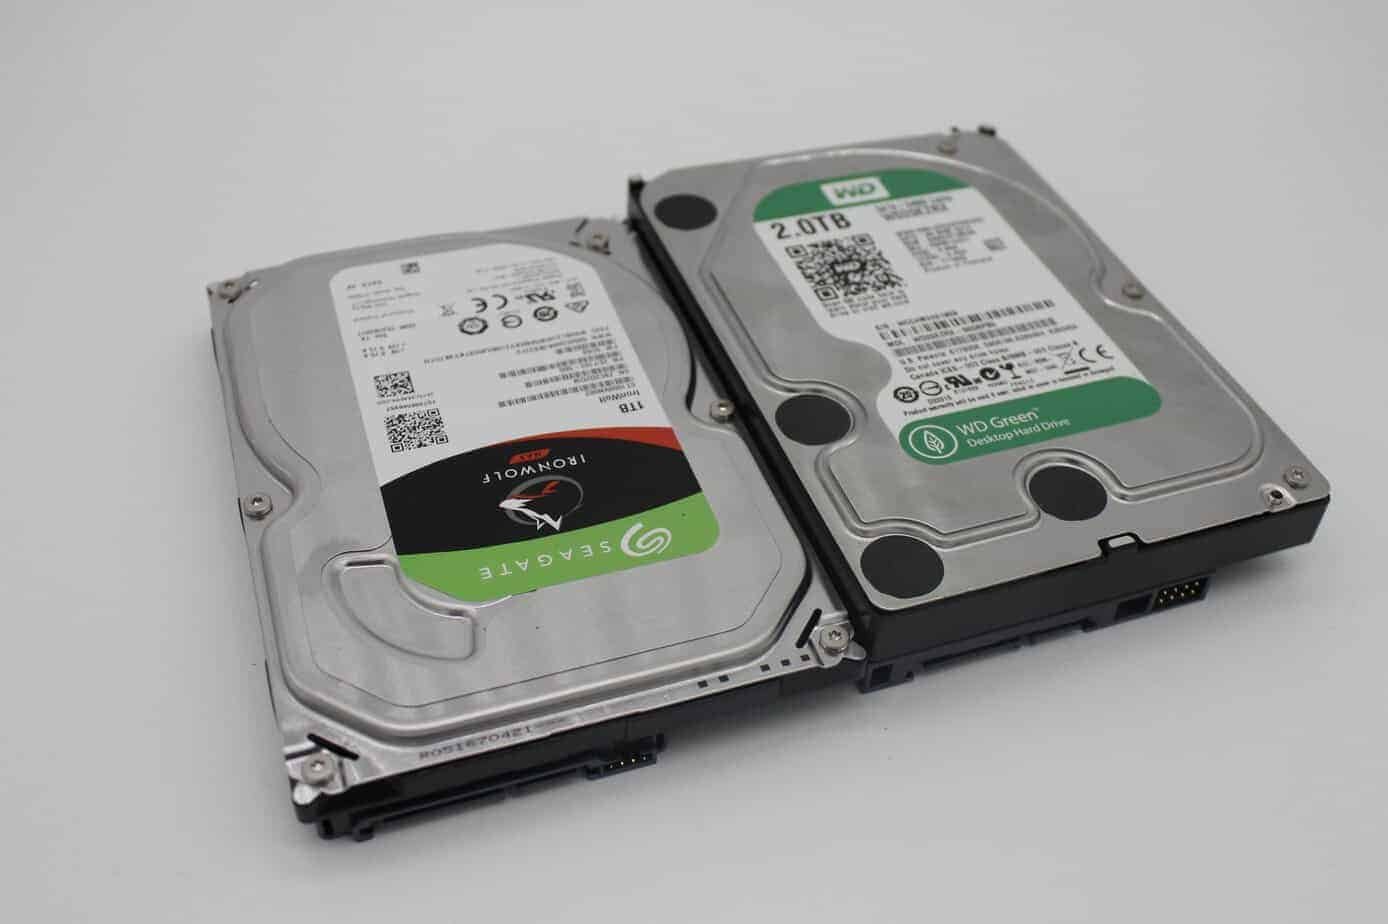 Info Harga Seagates Prime Day Discounts Include A Bunch Of Internal Nicholas Keith Carlton 40mm Date Nk7005 Ironwolf Nas Festplatten Von Seagate And Wd